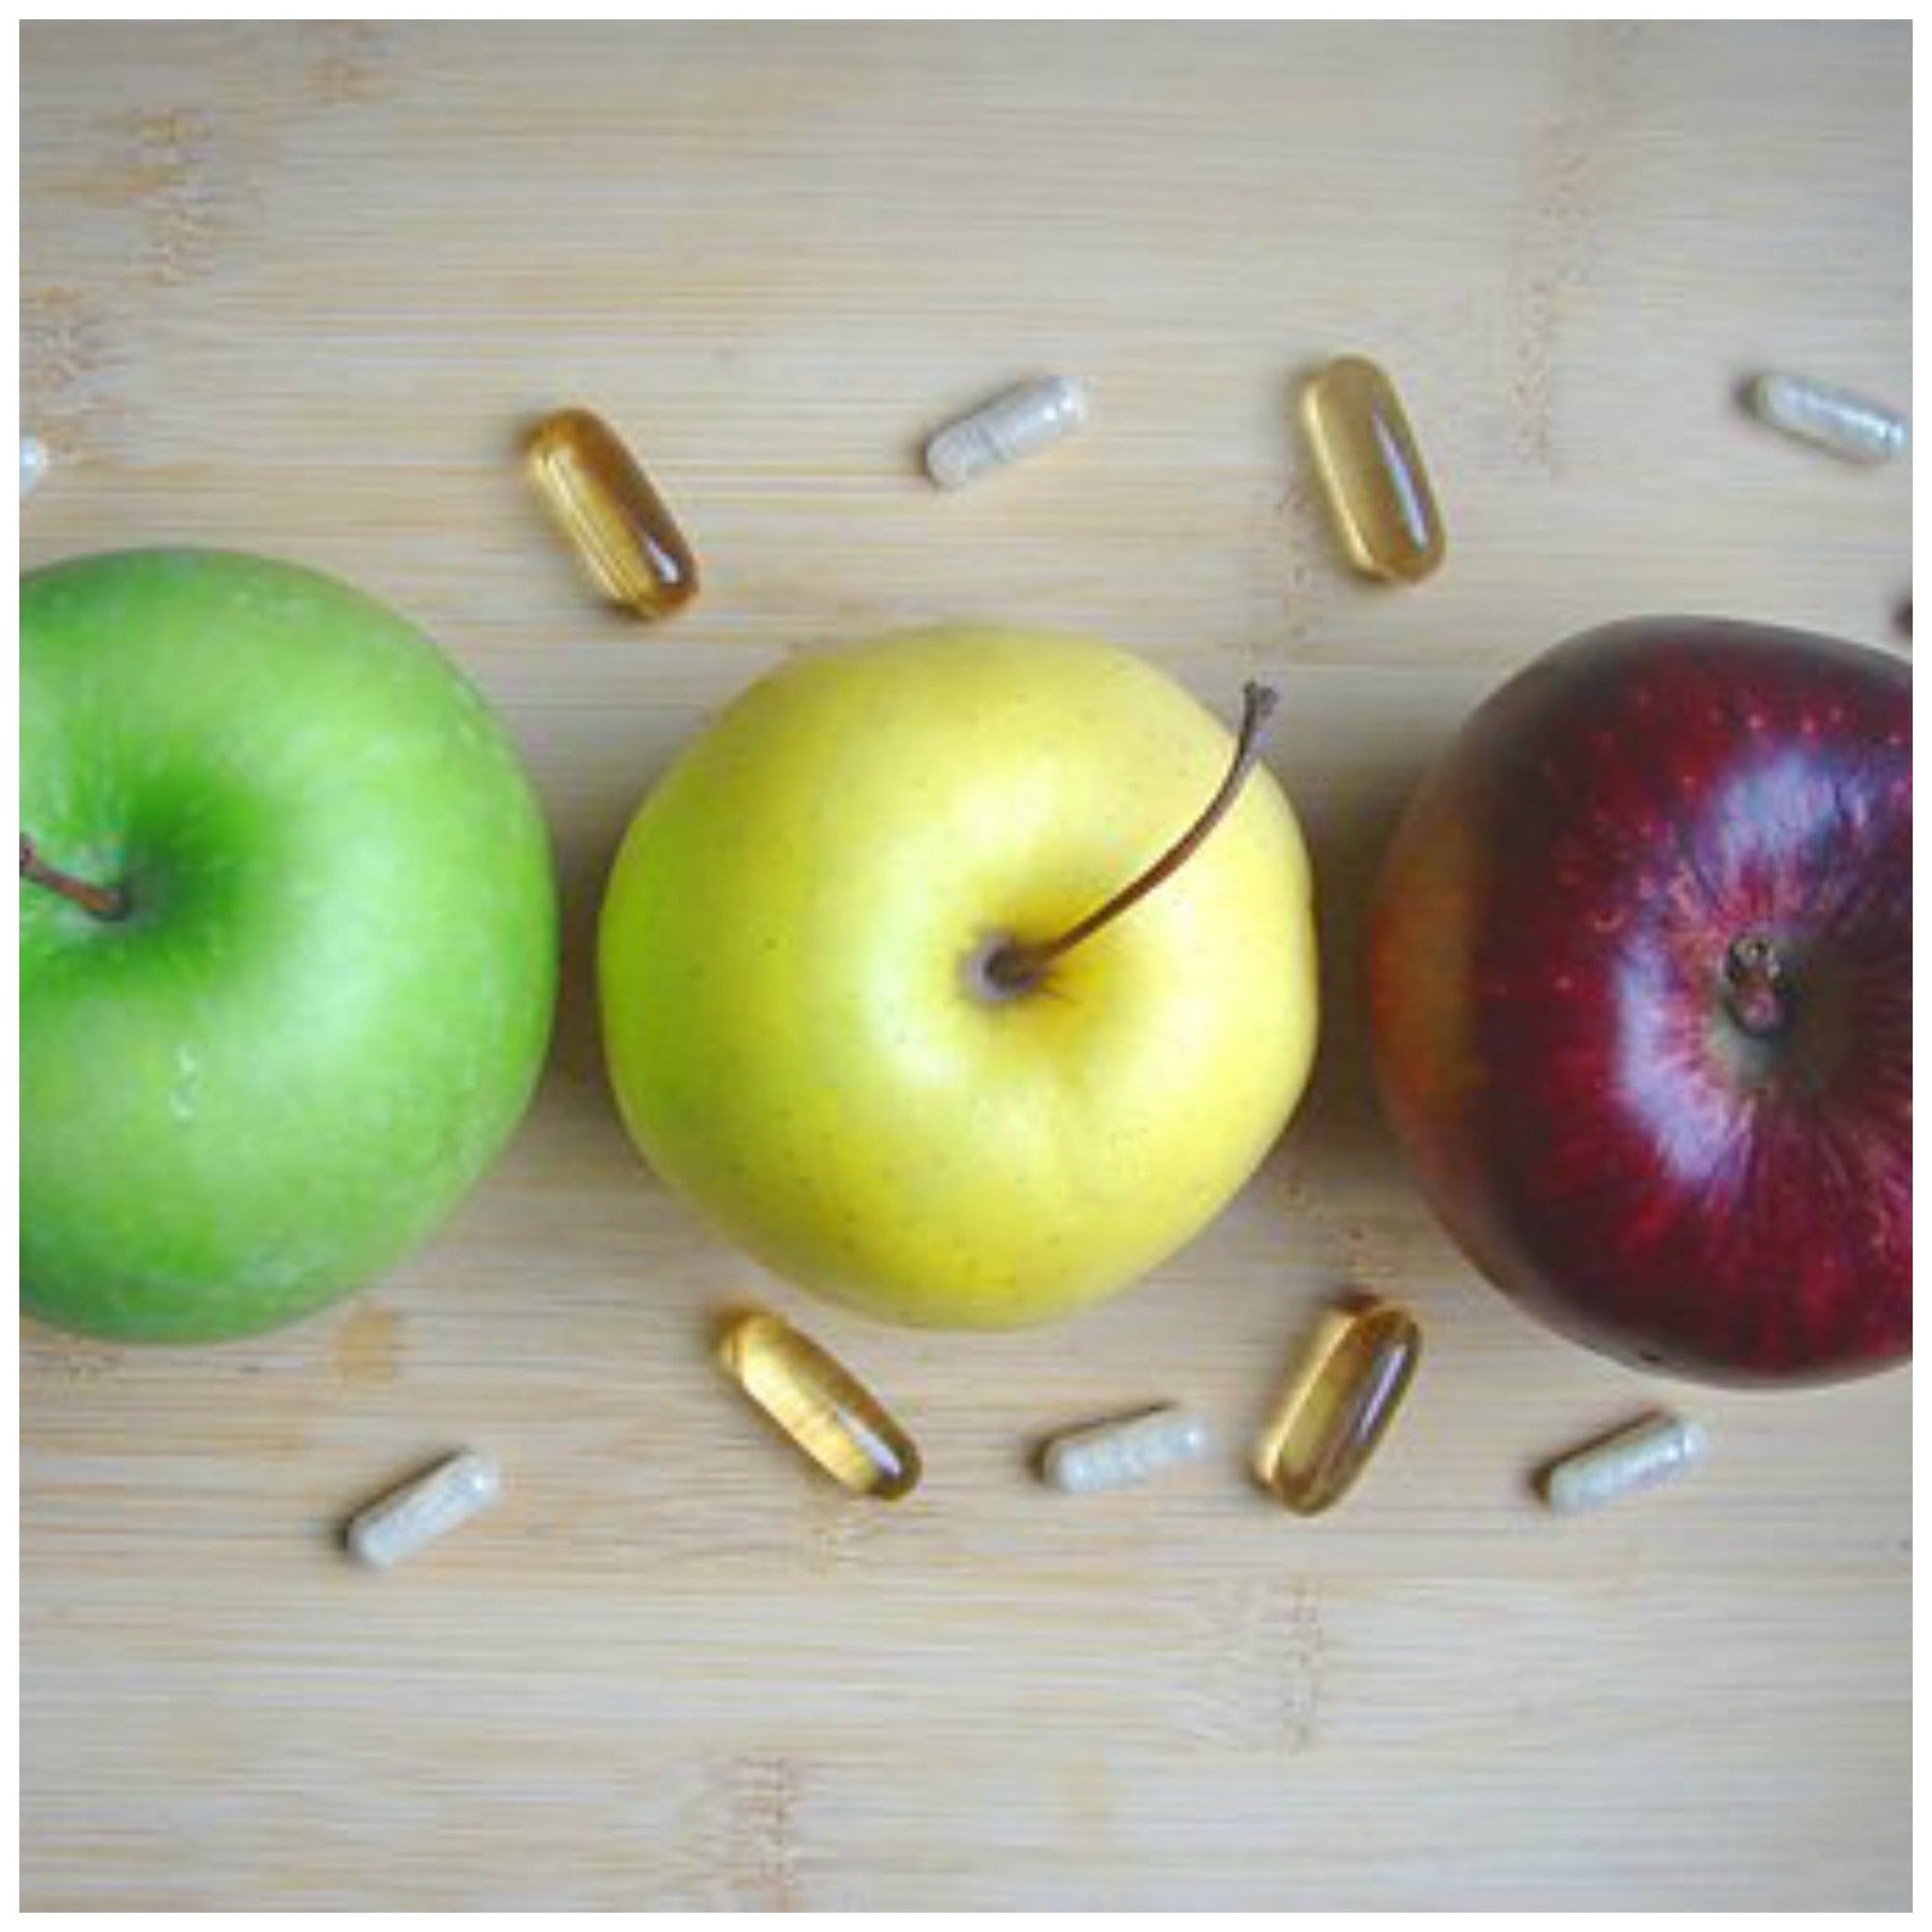 Should You Take Vitamins Or Not?